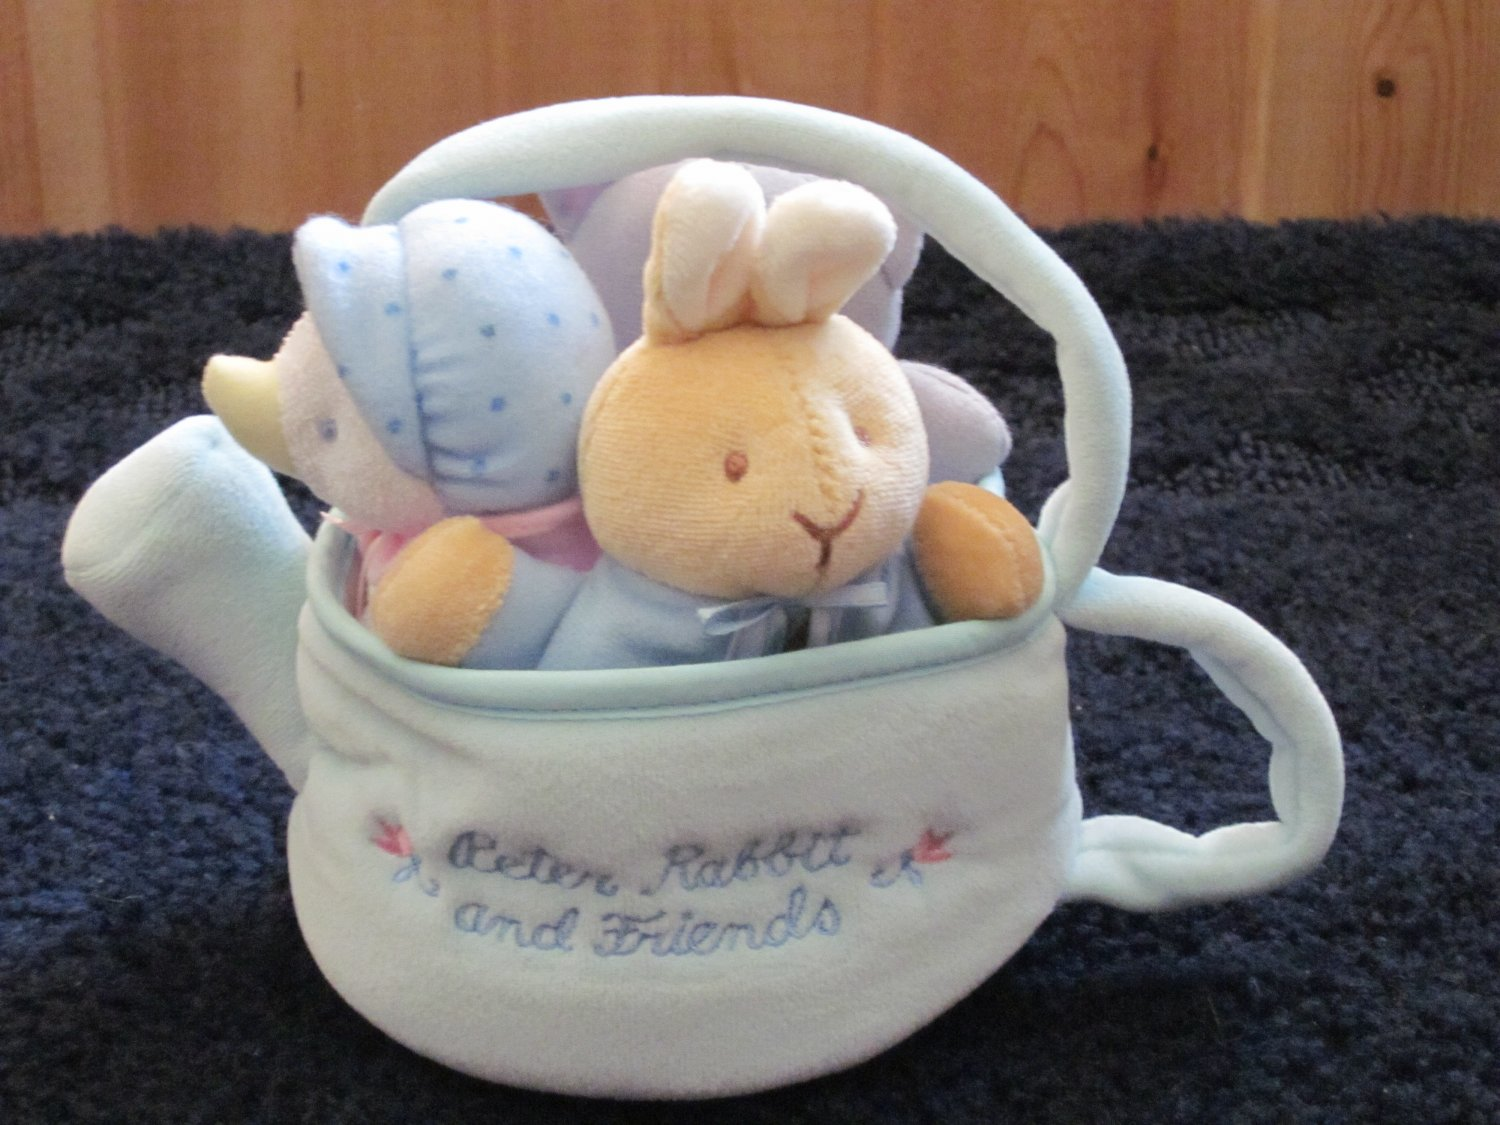 Eden Plush Watering Can or Tea Kettle with Peter Rabbit, Jemima Puddle Duck and Cat Plush Toys